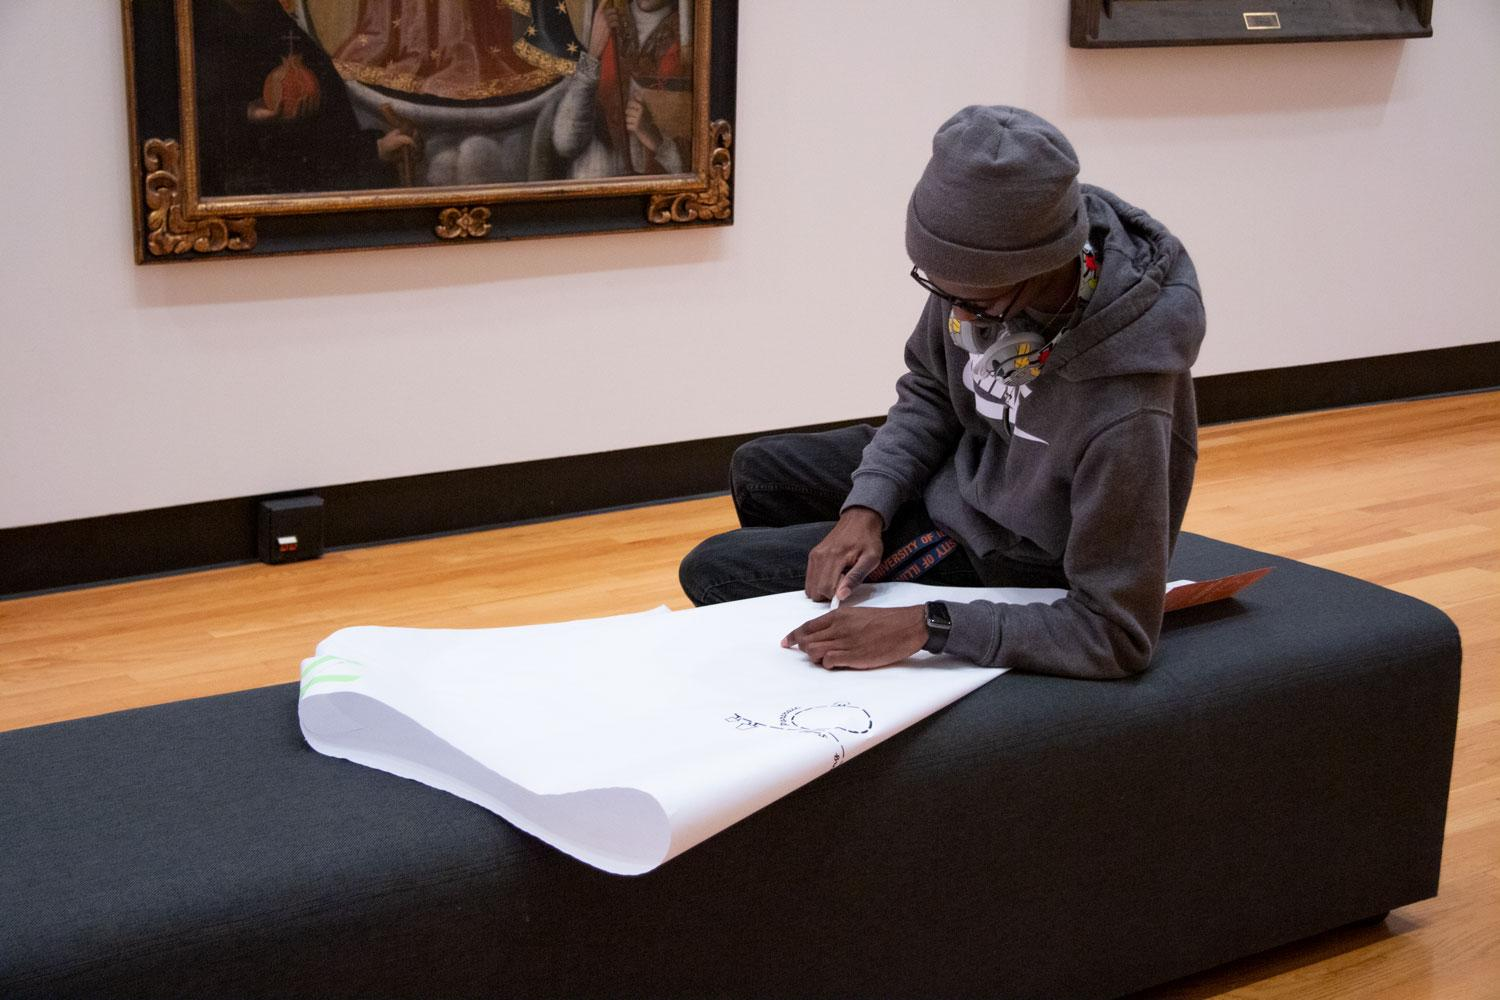 A museum visitor in a grey hoodie and hat semi-reclines on a museum bench to draw on their paper cape. Behind the visitor, who is African American, is a painting of Our Lady of the Remedies of La Paz.